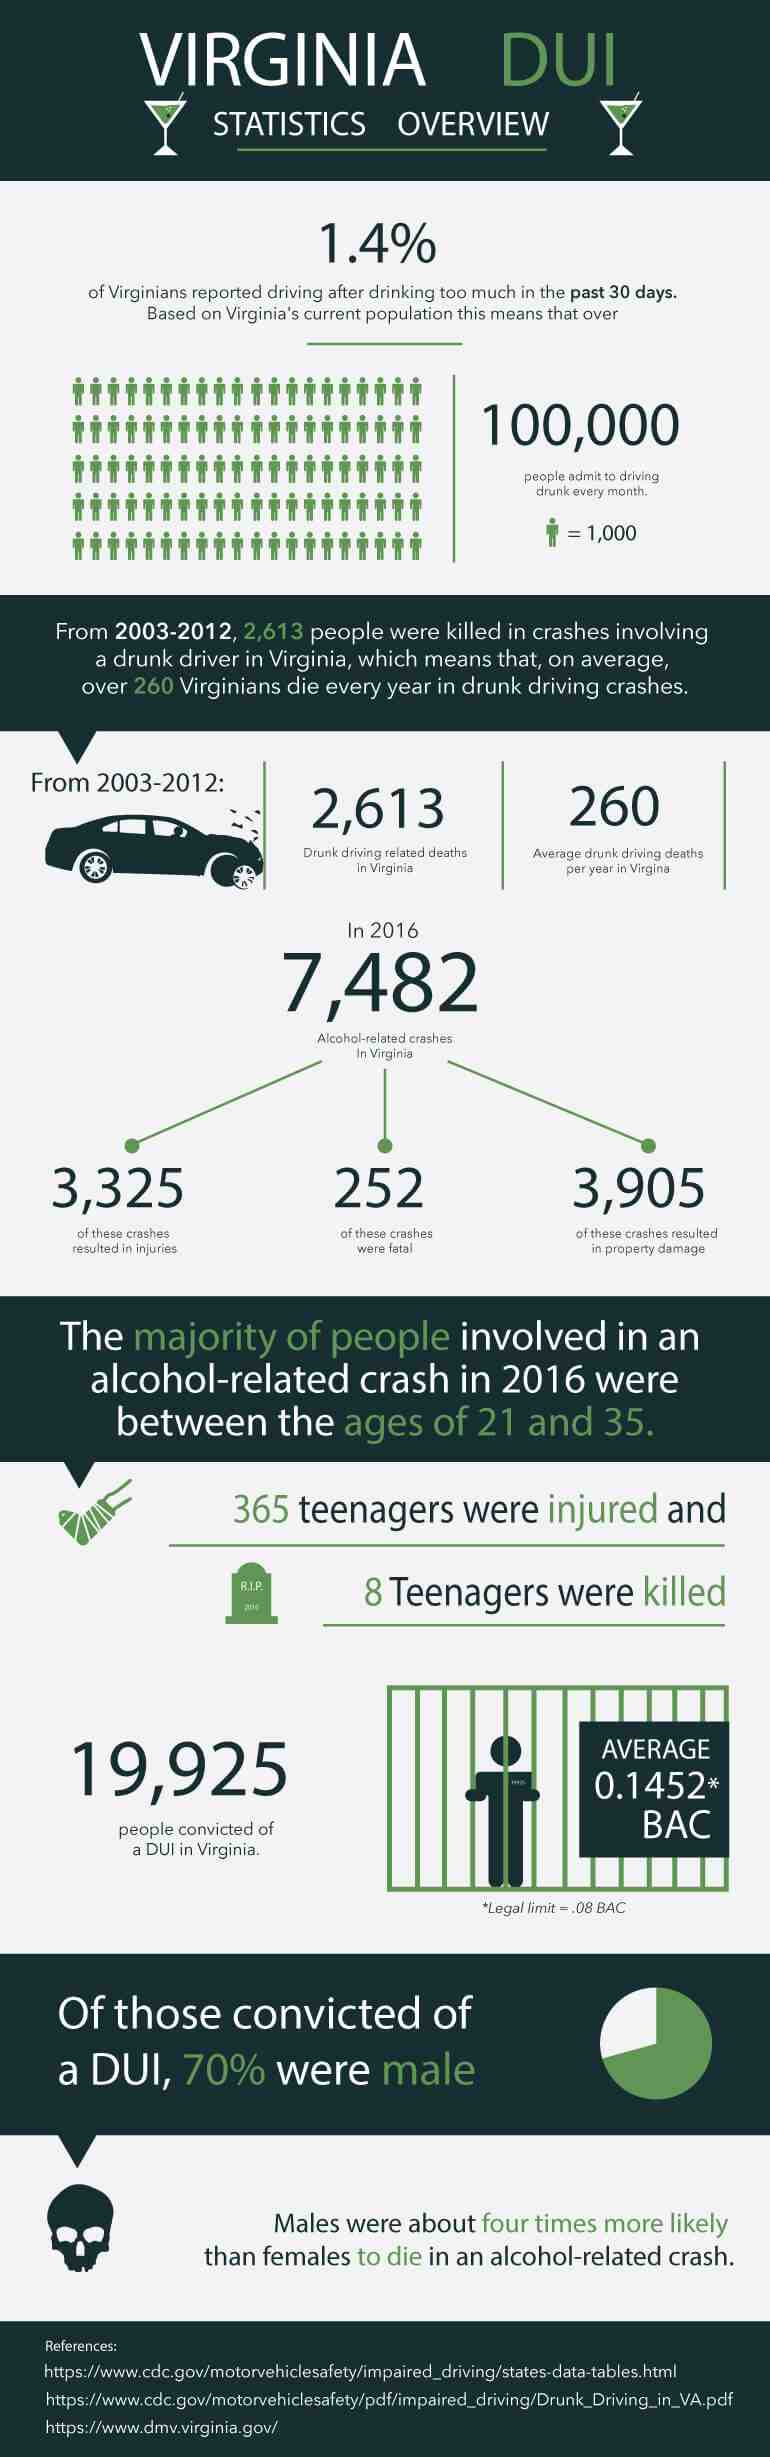 Virginia Drunk Driving Statistics